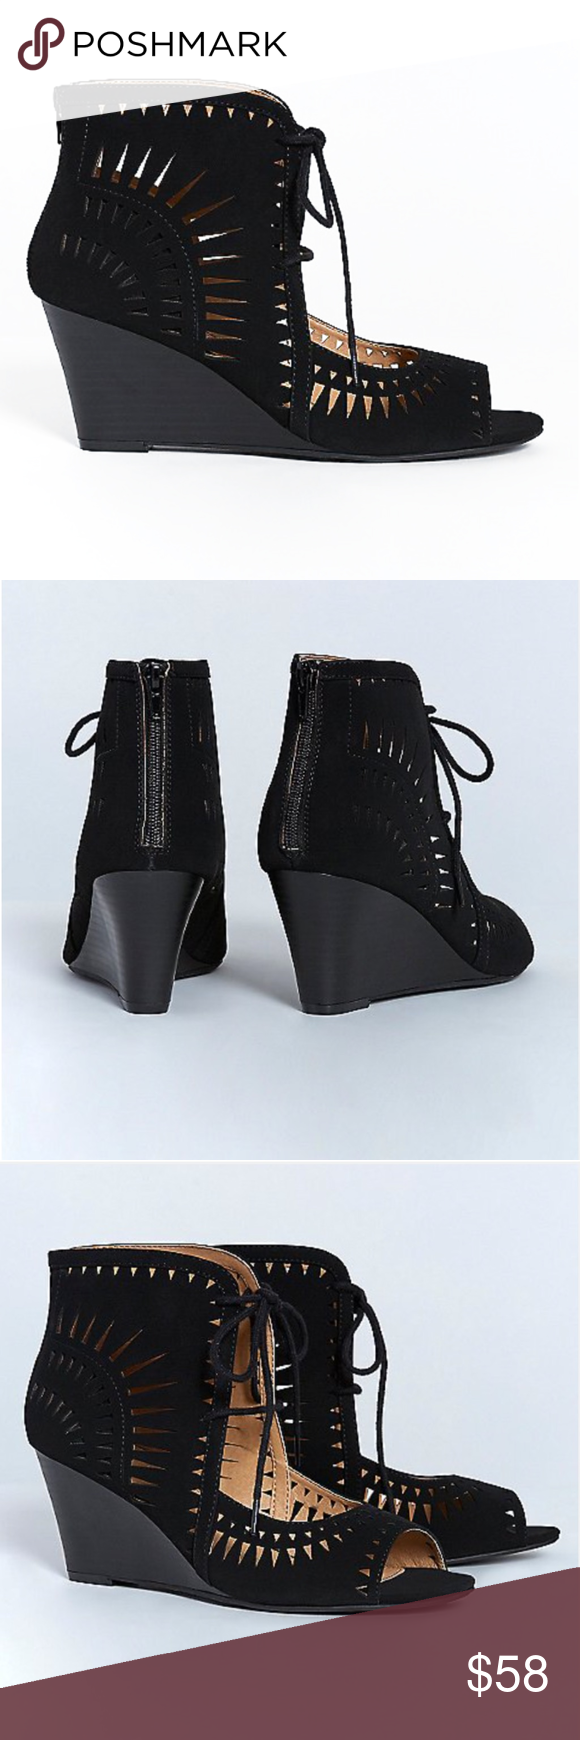 60c595fa1 ... Get a lift from these lace-up wedges with attention-grabbing cutouts in  black. Back-zip closure. Wide width, heel height is 3.5